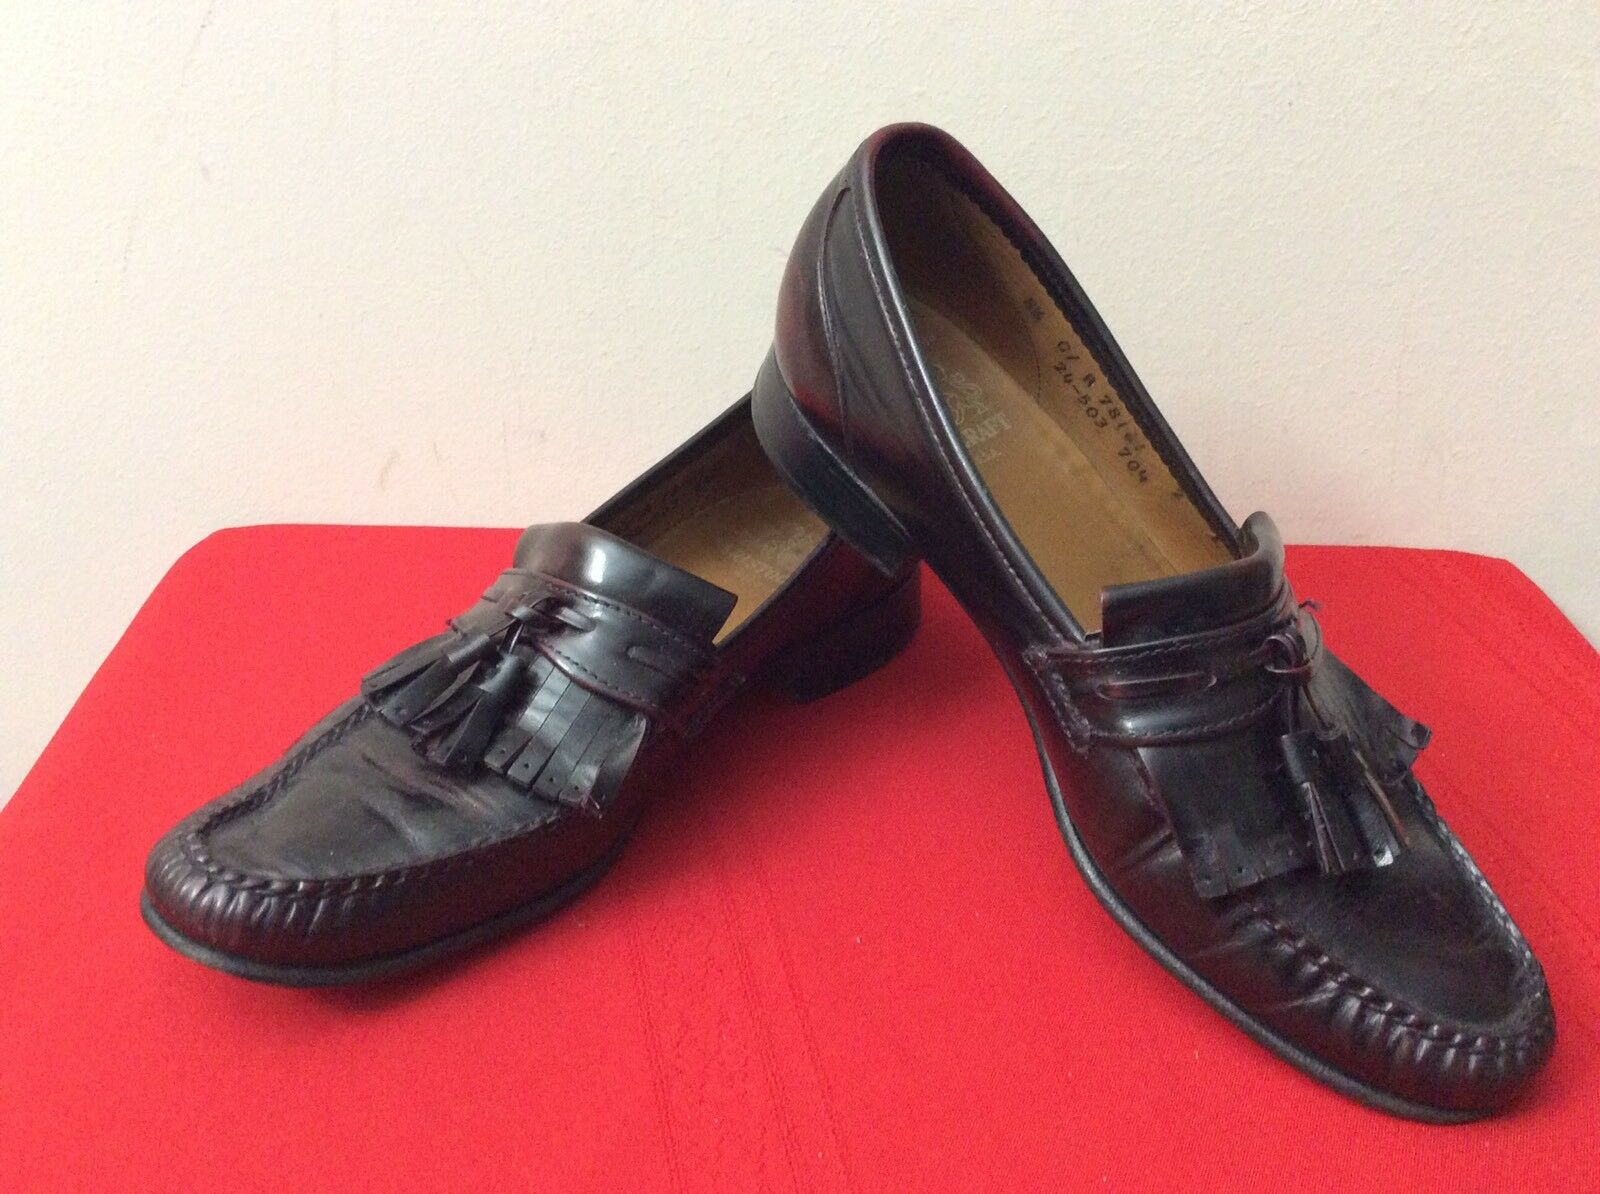 Johnston & Murphy Tassel Dress Shoes Brown Wingtip Tassel Murphy Loafers Mens Size 8.5 (bx25) eacfdd